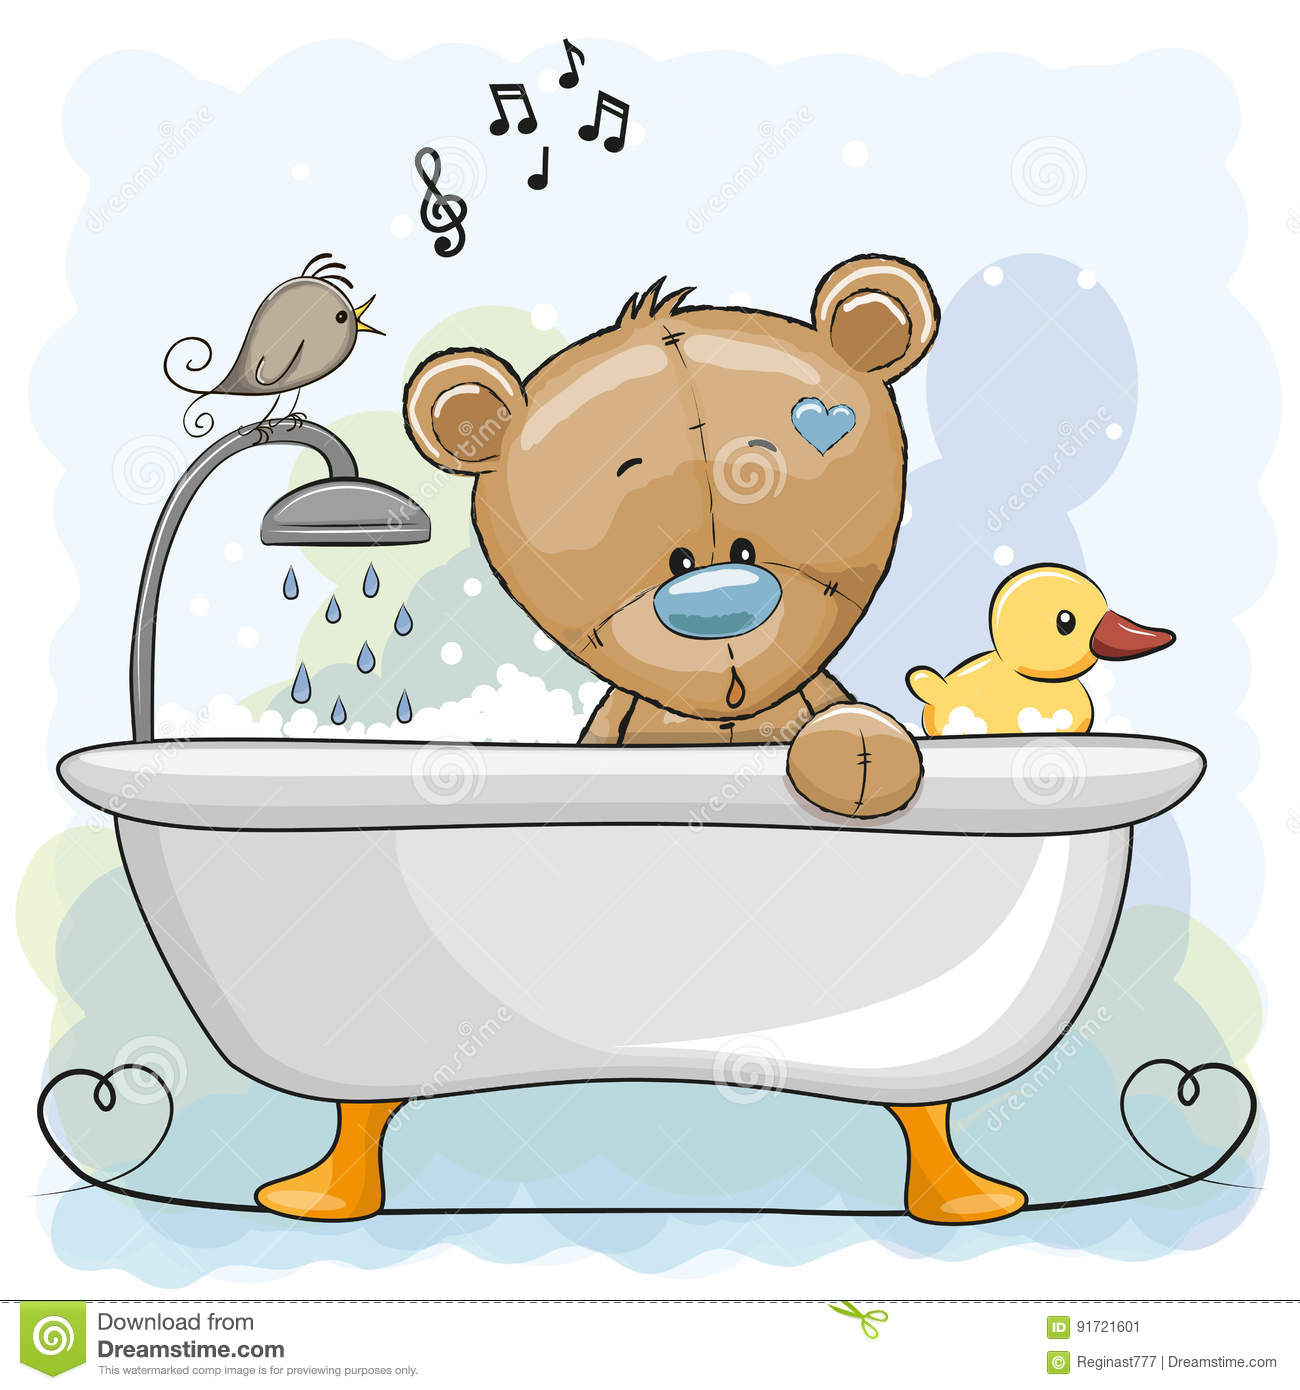 Cartoon Pictures Of Bathrooms: Bear In The Bathroom Stock Vector